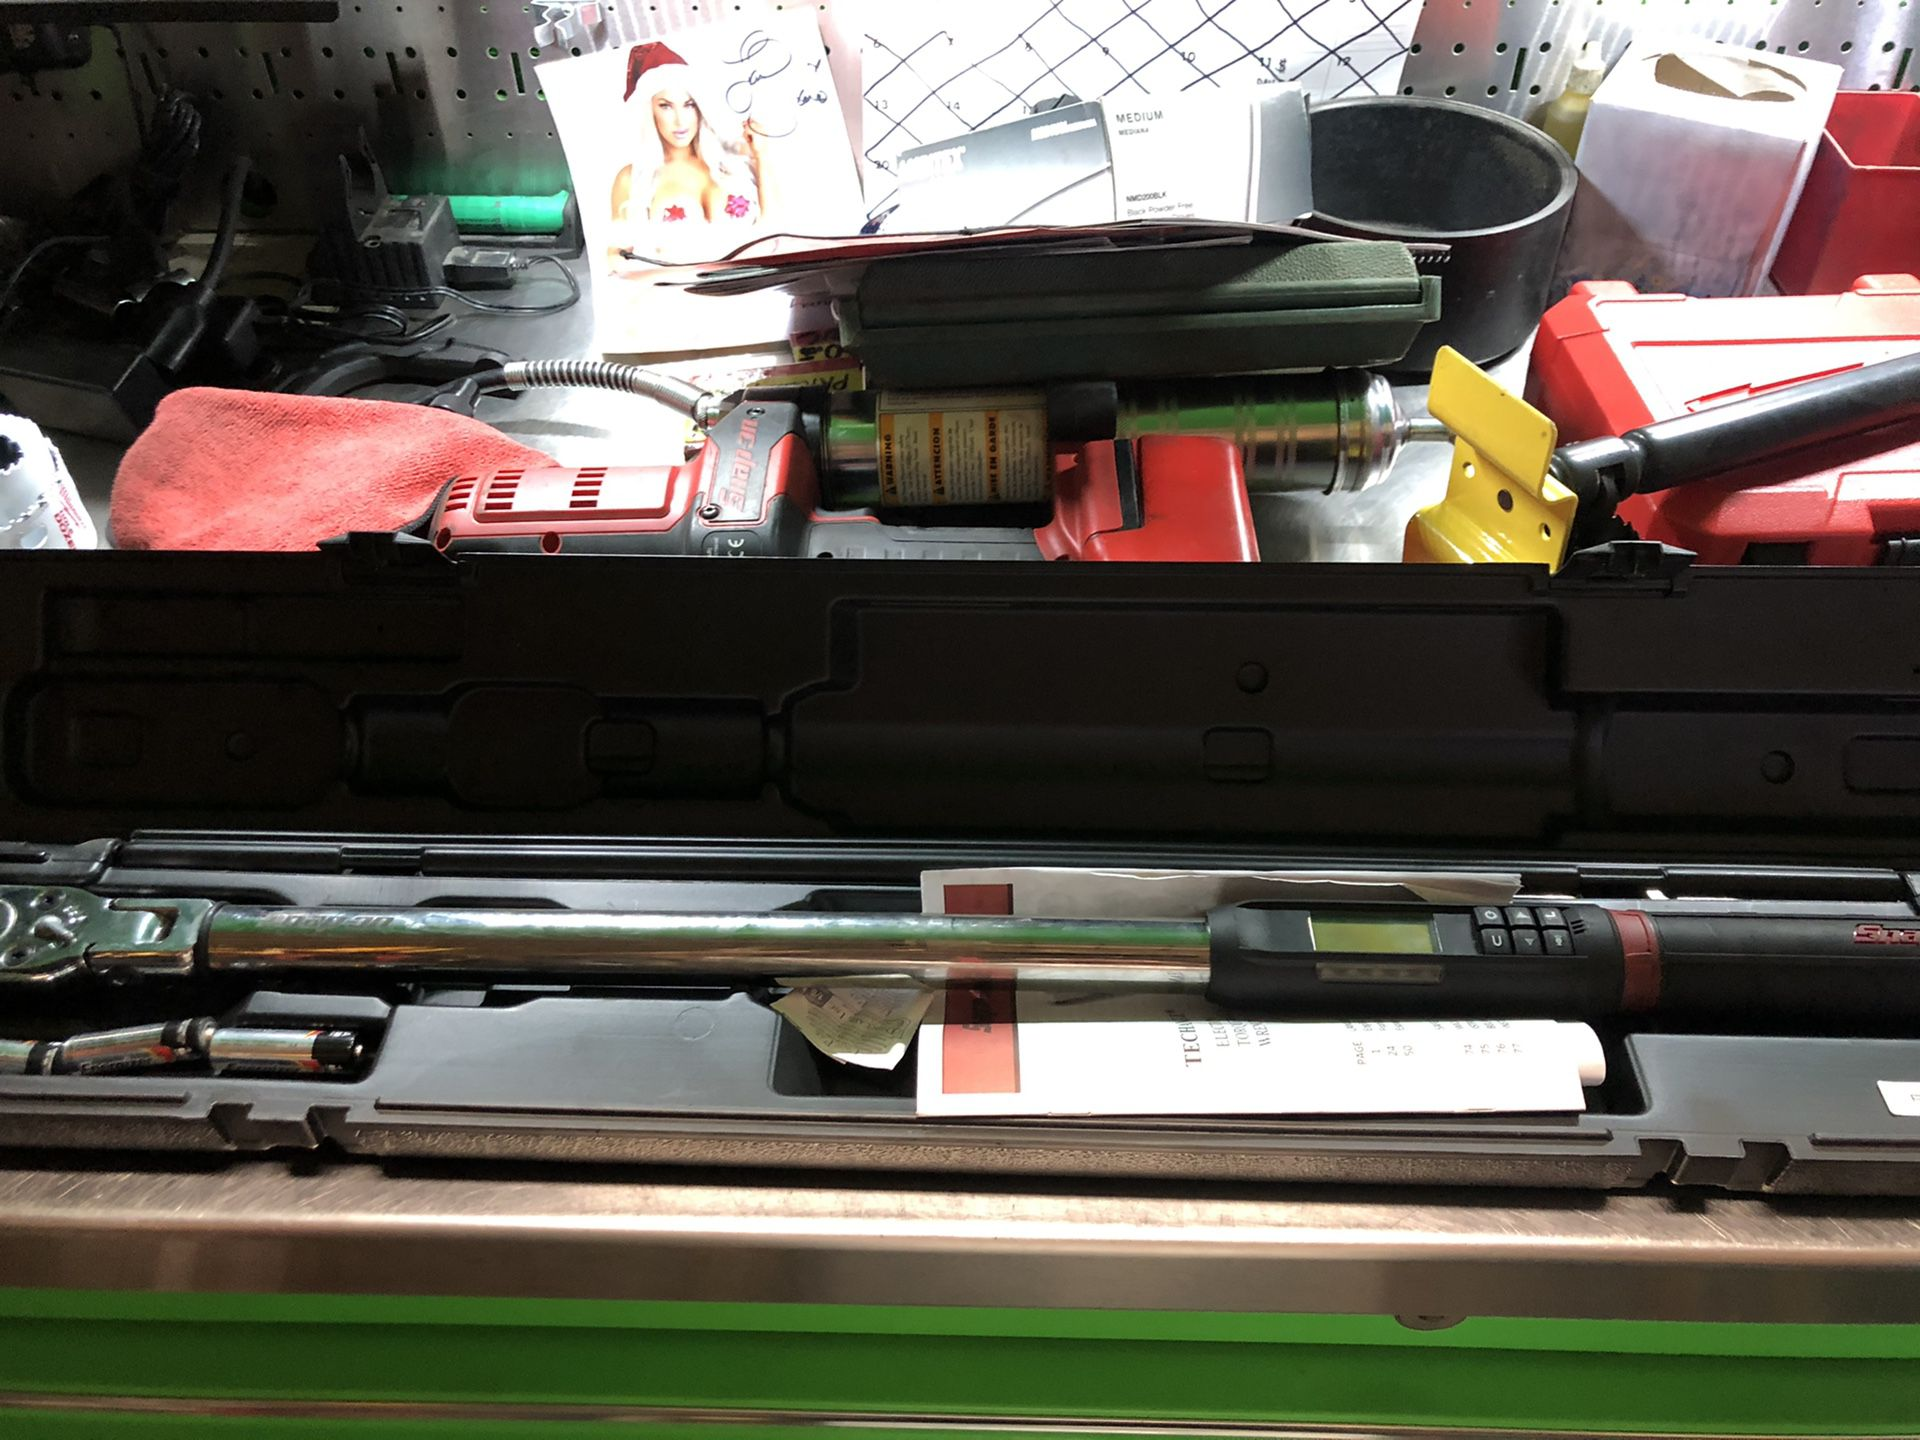 Snapon 1/2 tech torque wrench